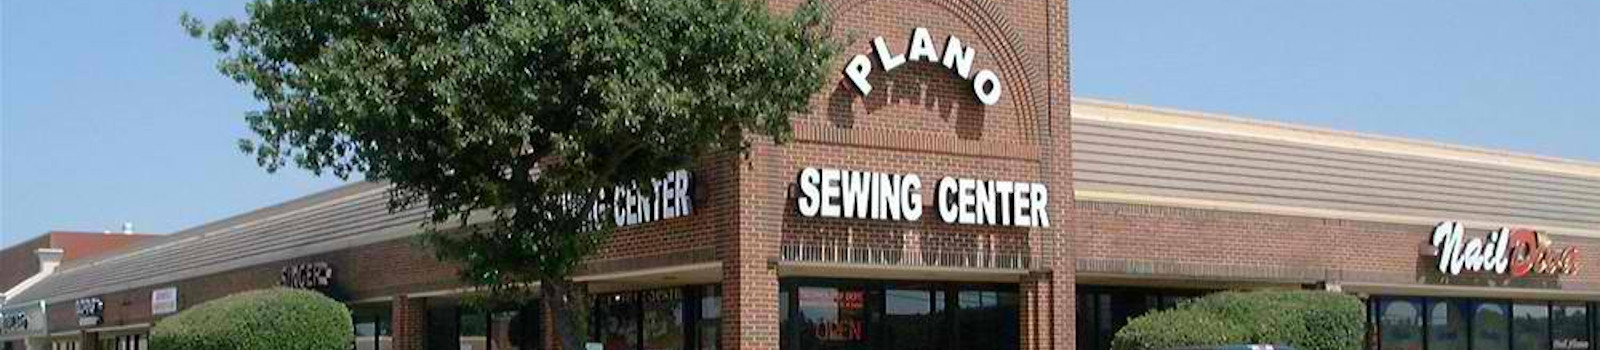 Plano Sewing Center